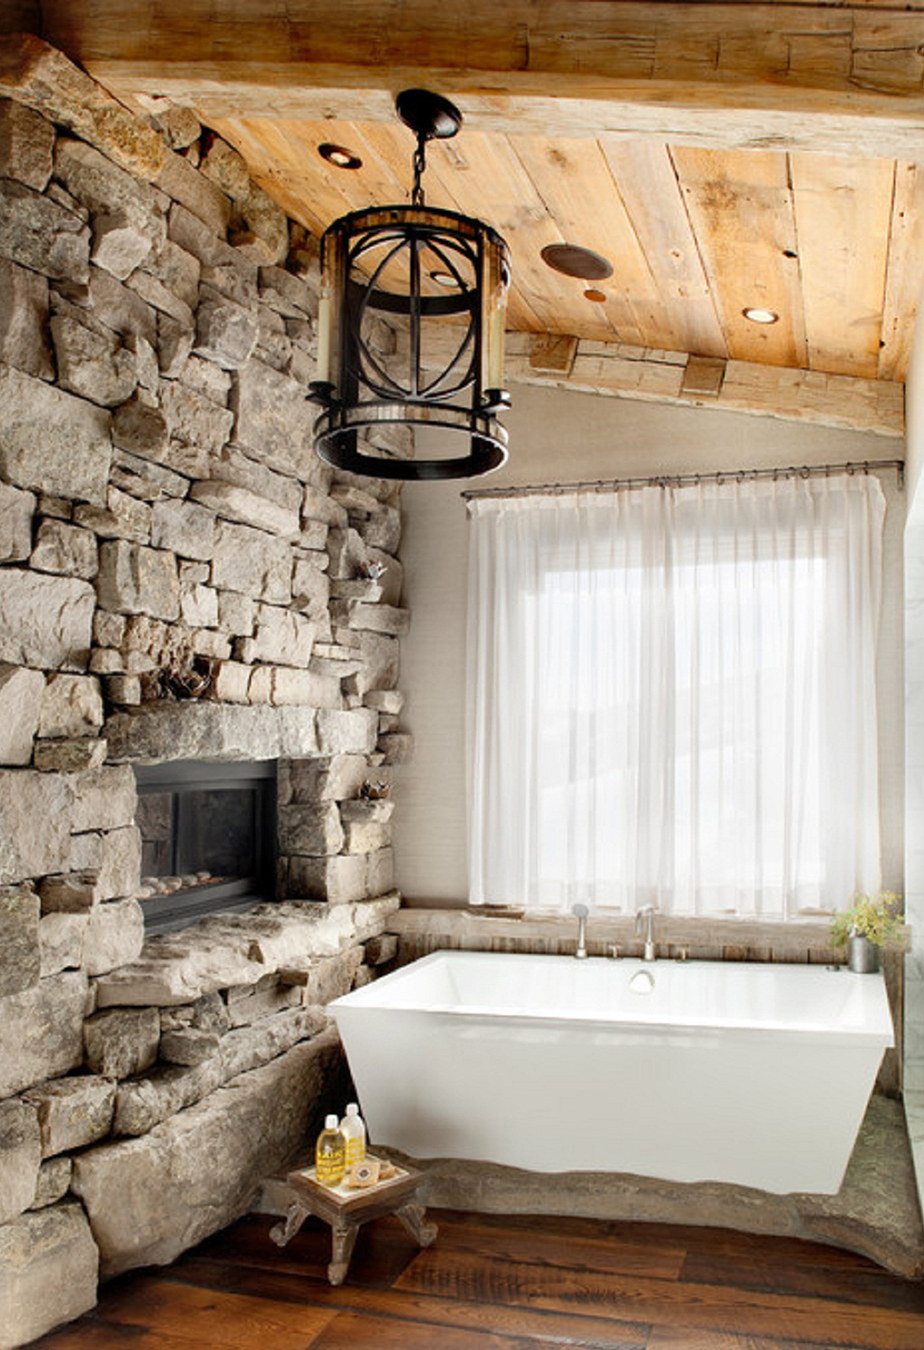 What is Rustic Style Design | Rough Hewn Beams